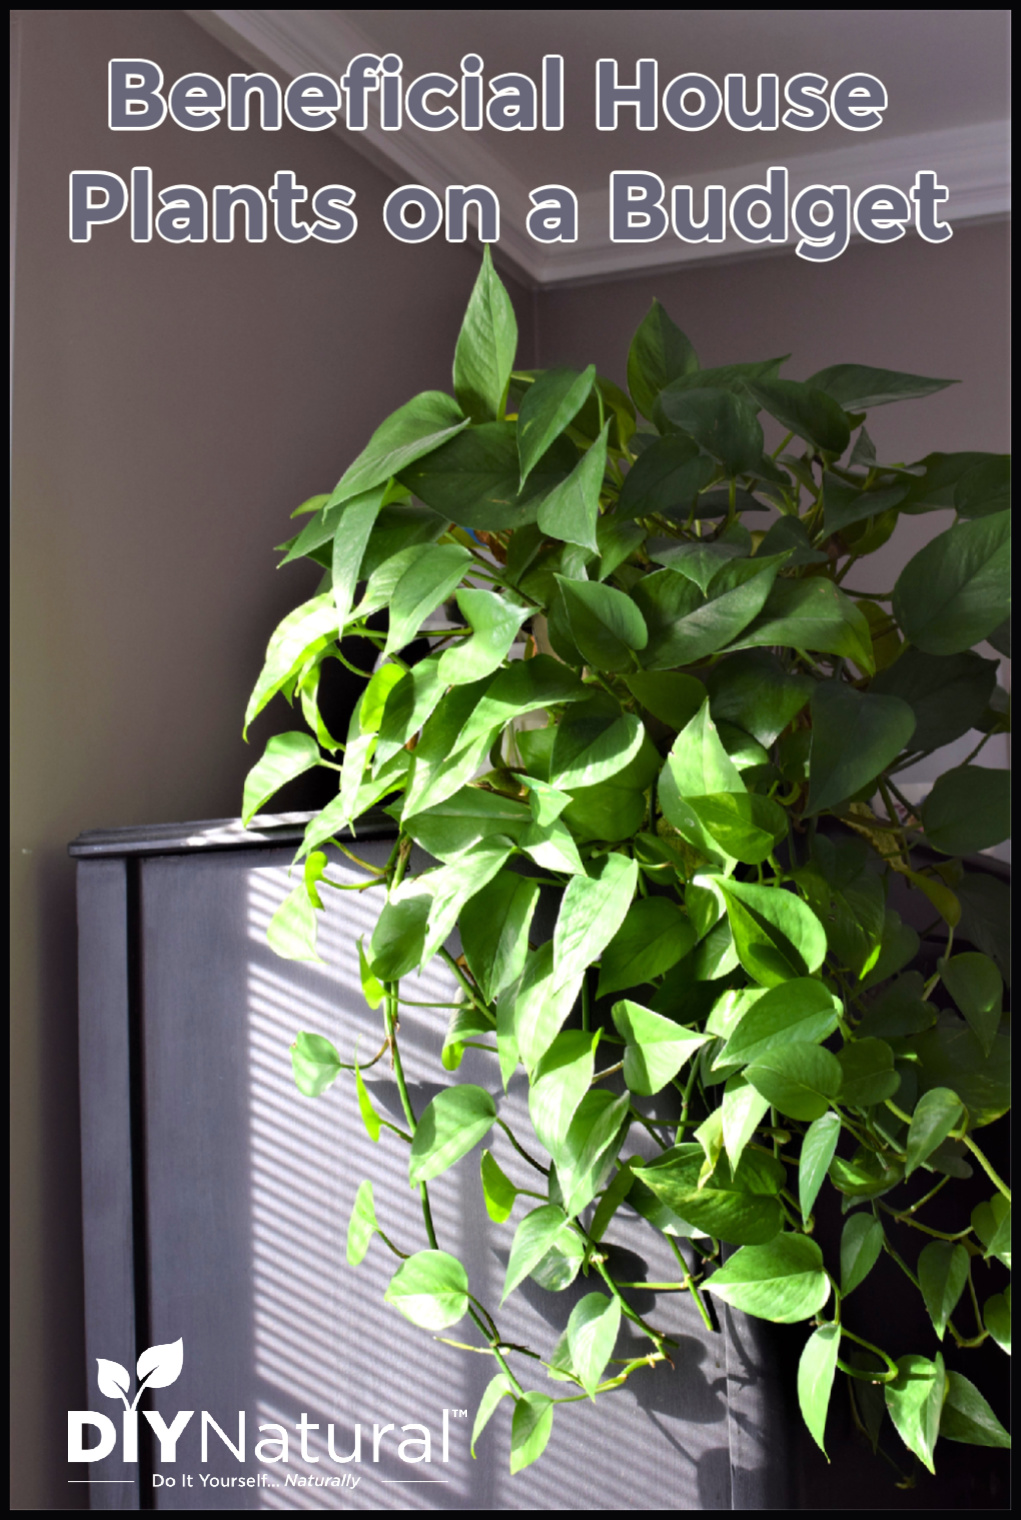 Cheap House Plants 3 Ways To Find Beneficial Indoor Plants On A Budget